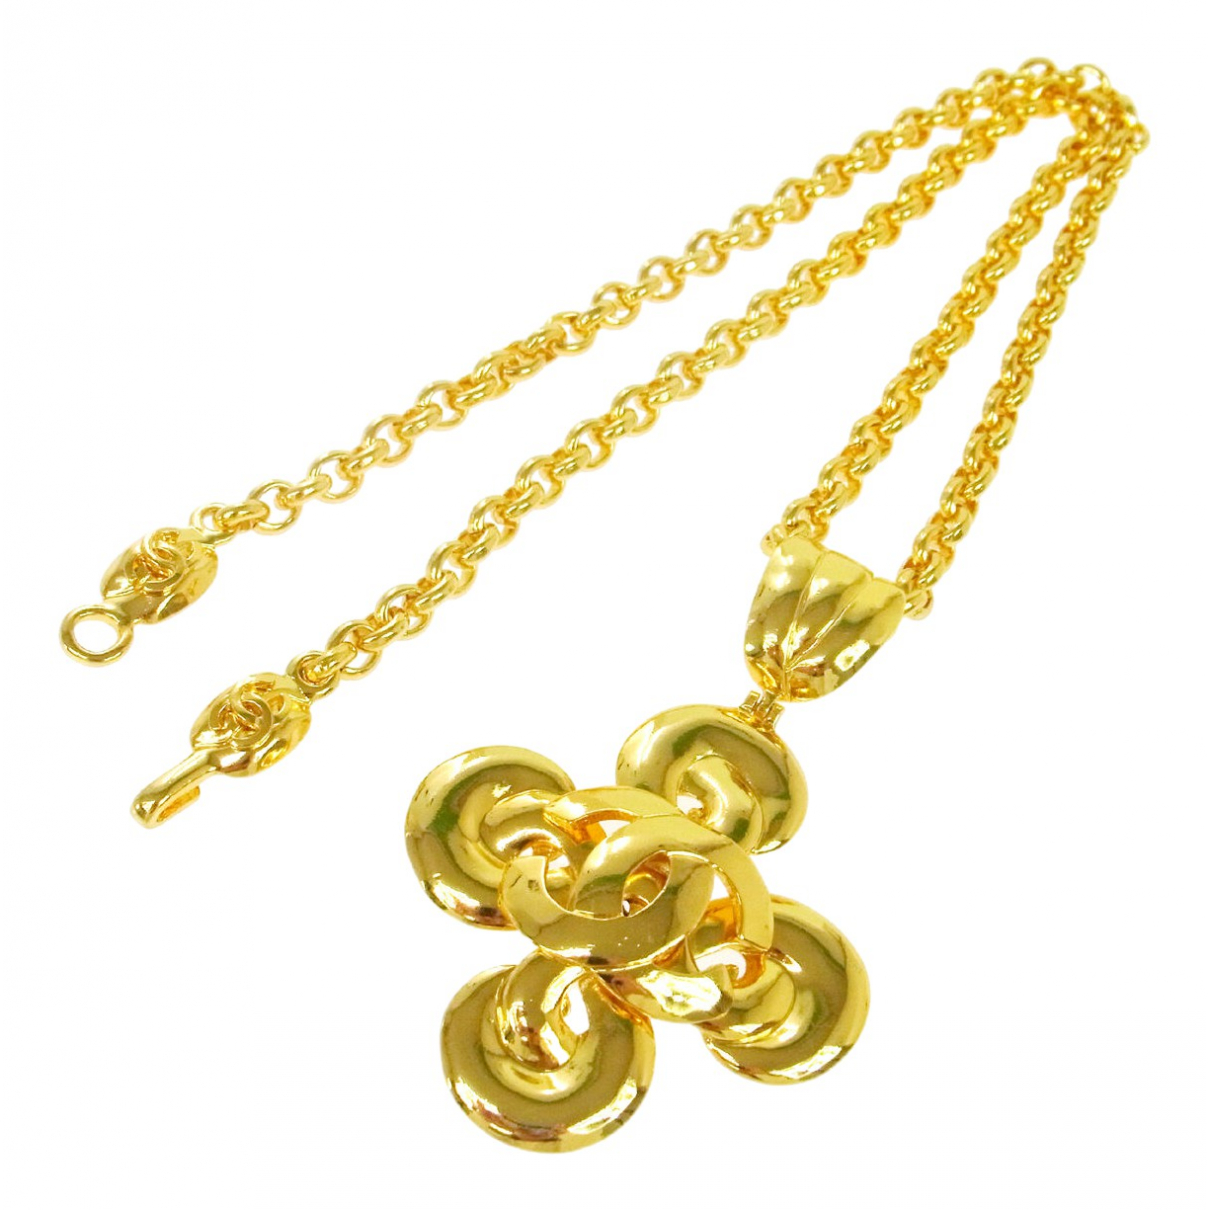 Chanel \N Metal necklace for Women \N